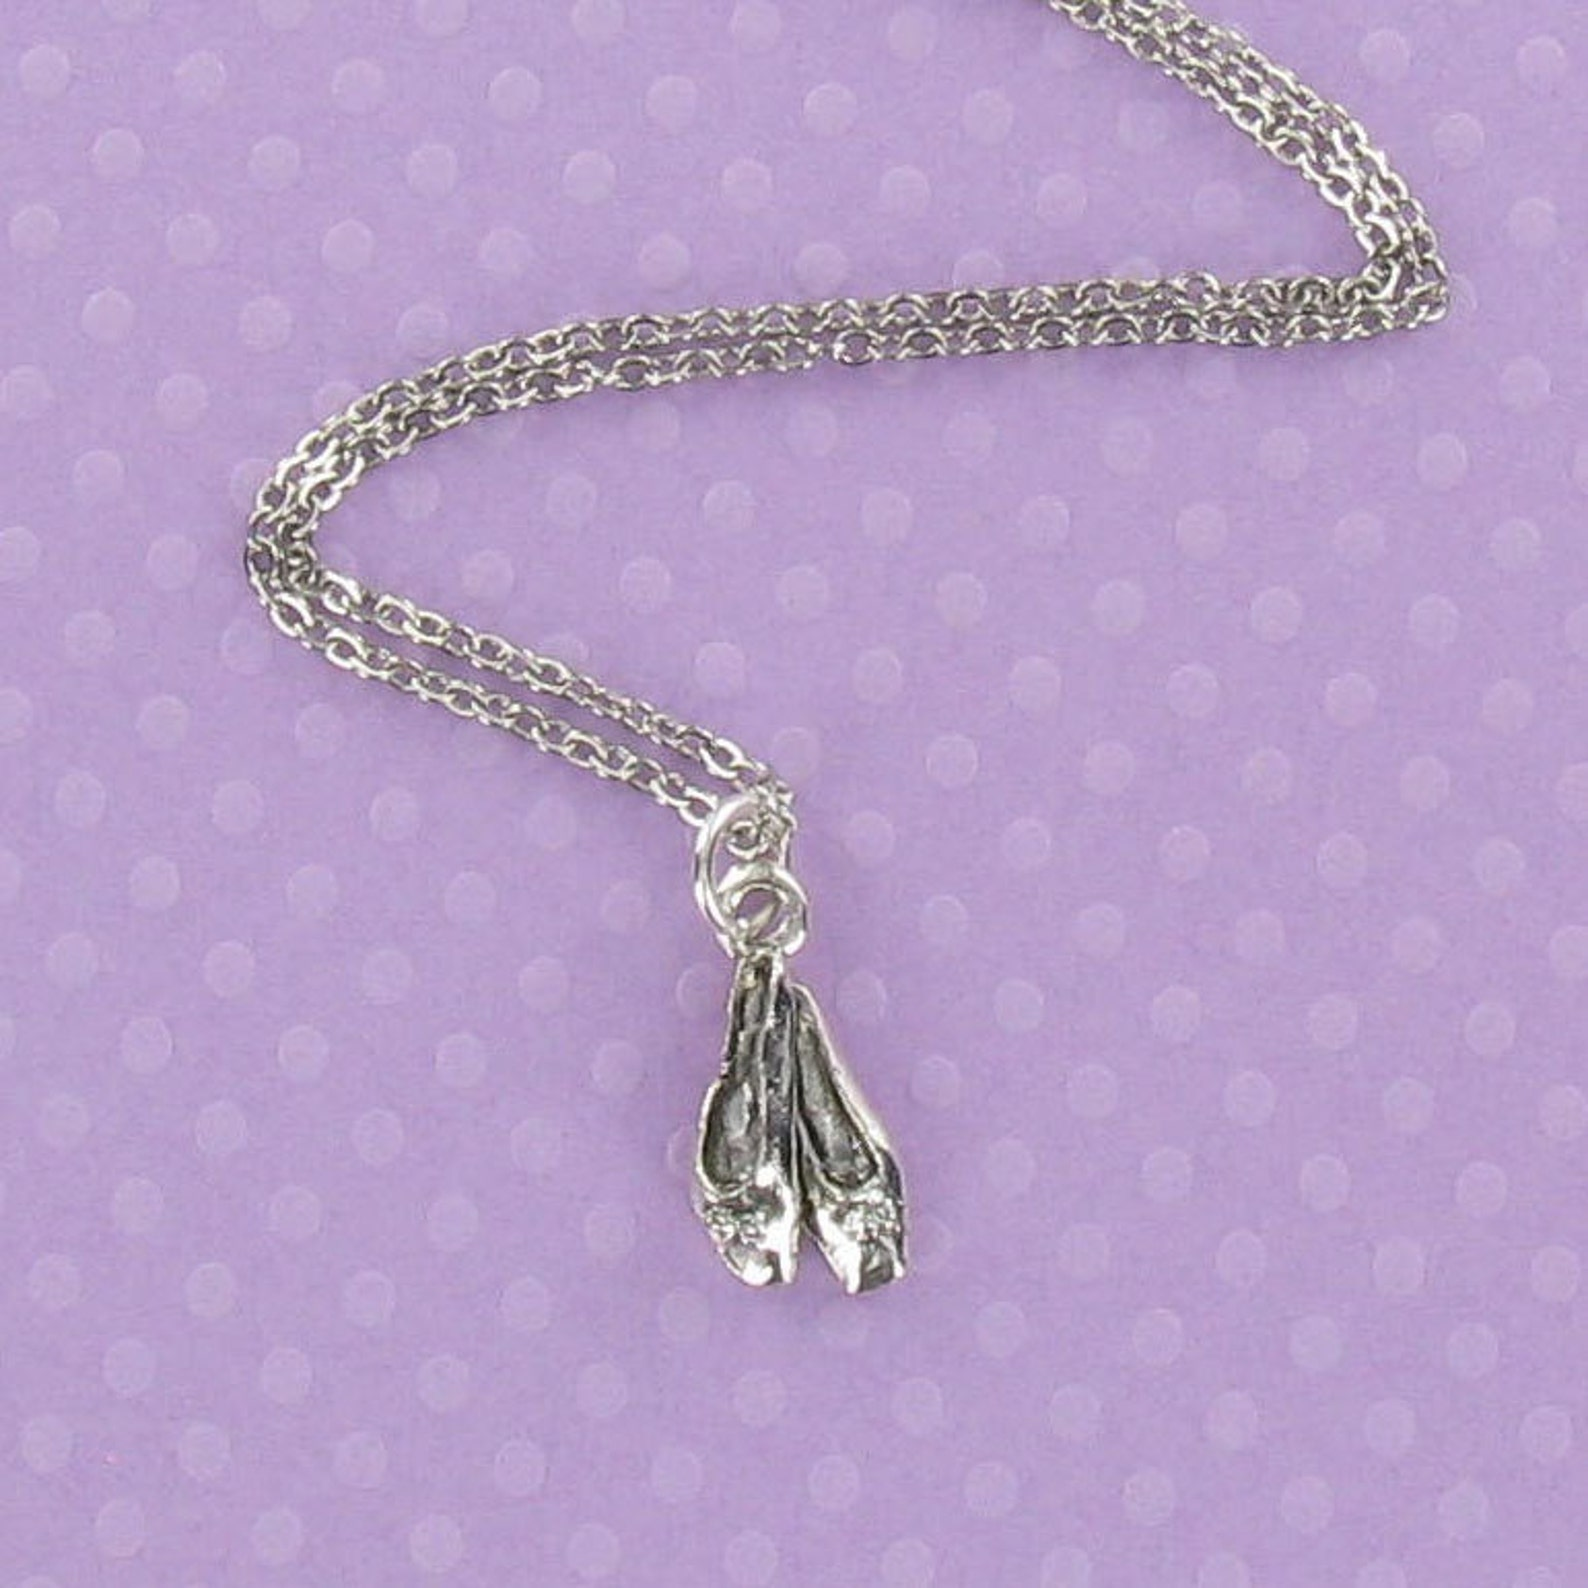 ballet slippers necklace - pewter charm on a free plated chain - dance shoes toe